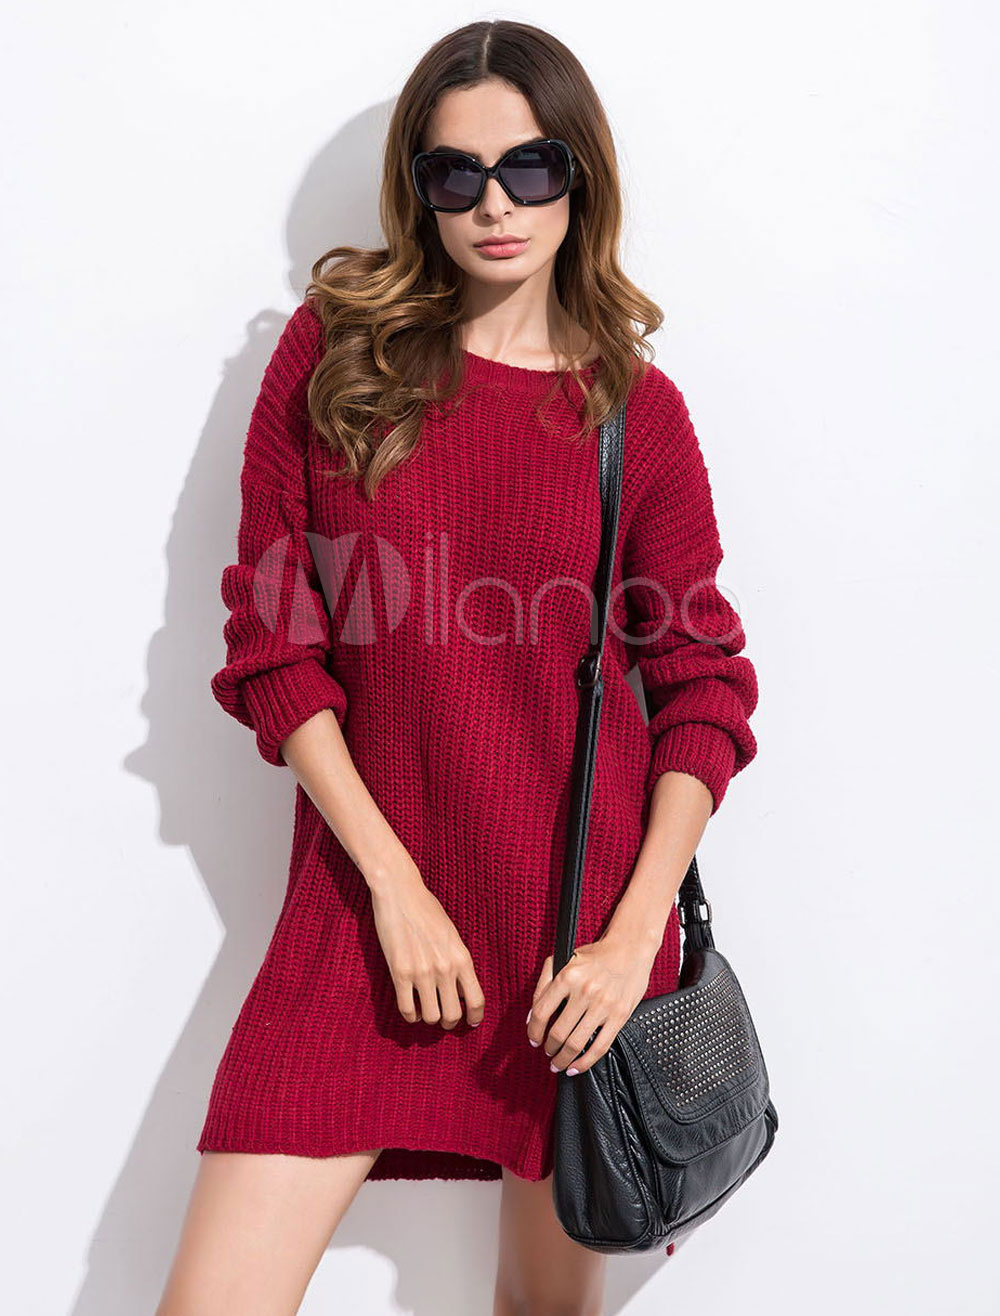 Burgundy Knit Dress Round Neck Long Sleeve High Low Short Sweater Dresses For Women Cheap clothes, free shipping worldwide